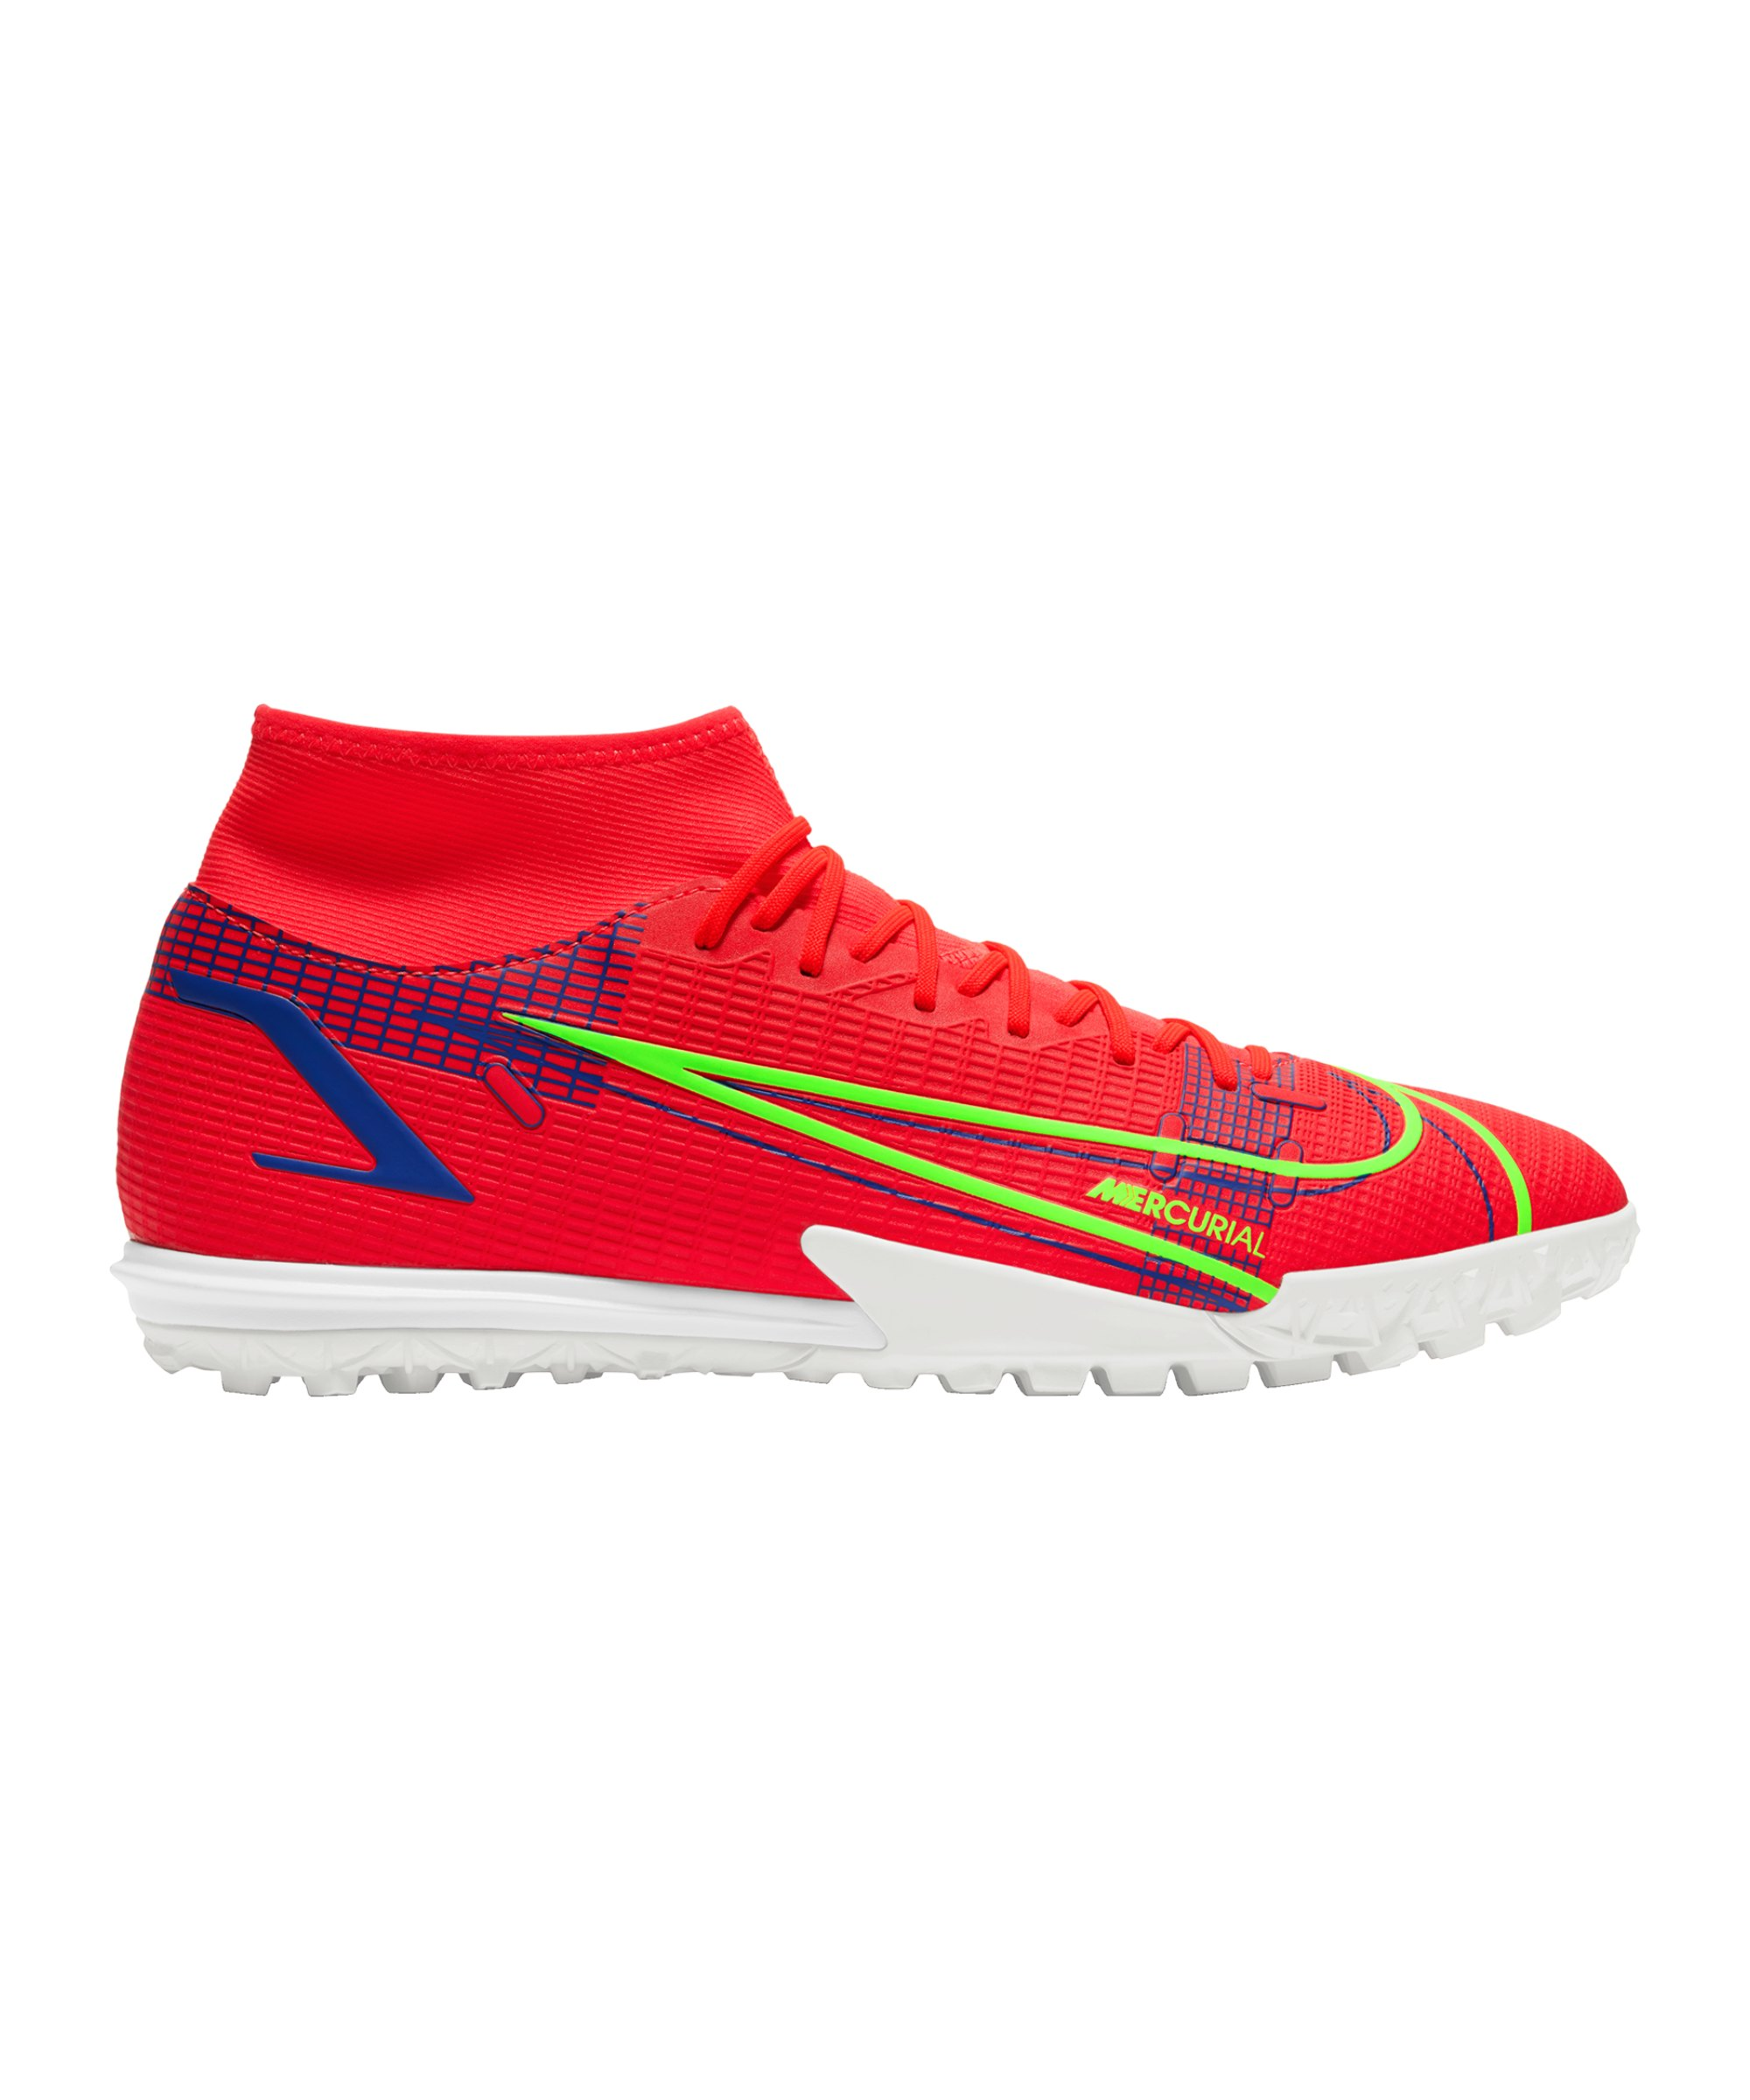 Nike Mercurial Superfly VIII Spectrum Academy TF Rot F600 - rot